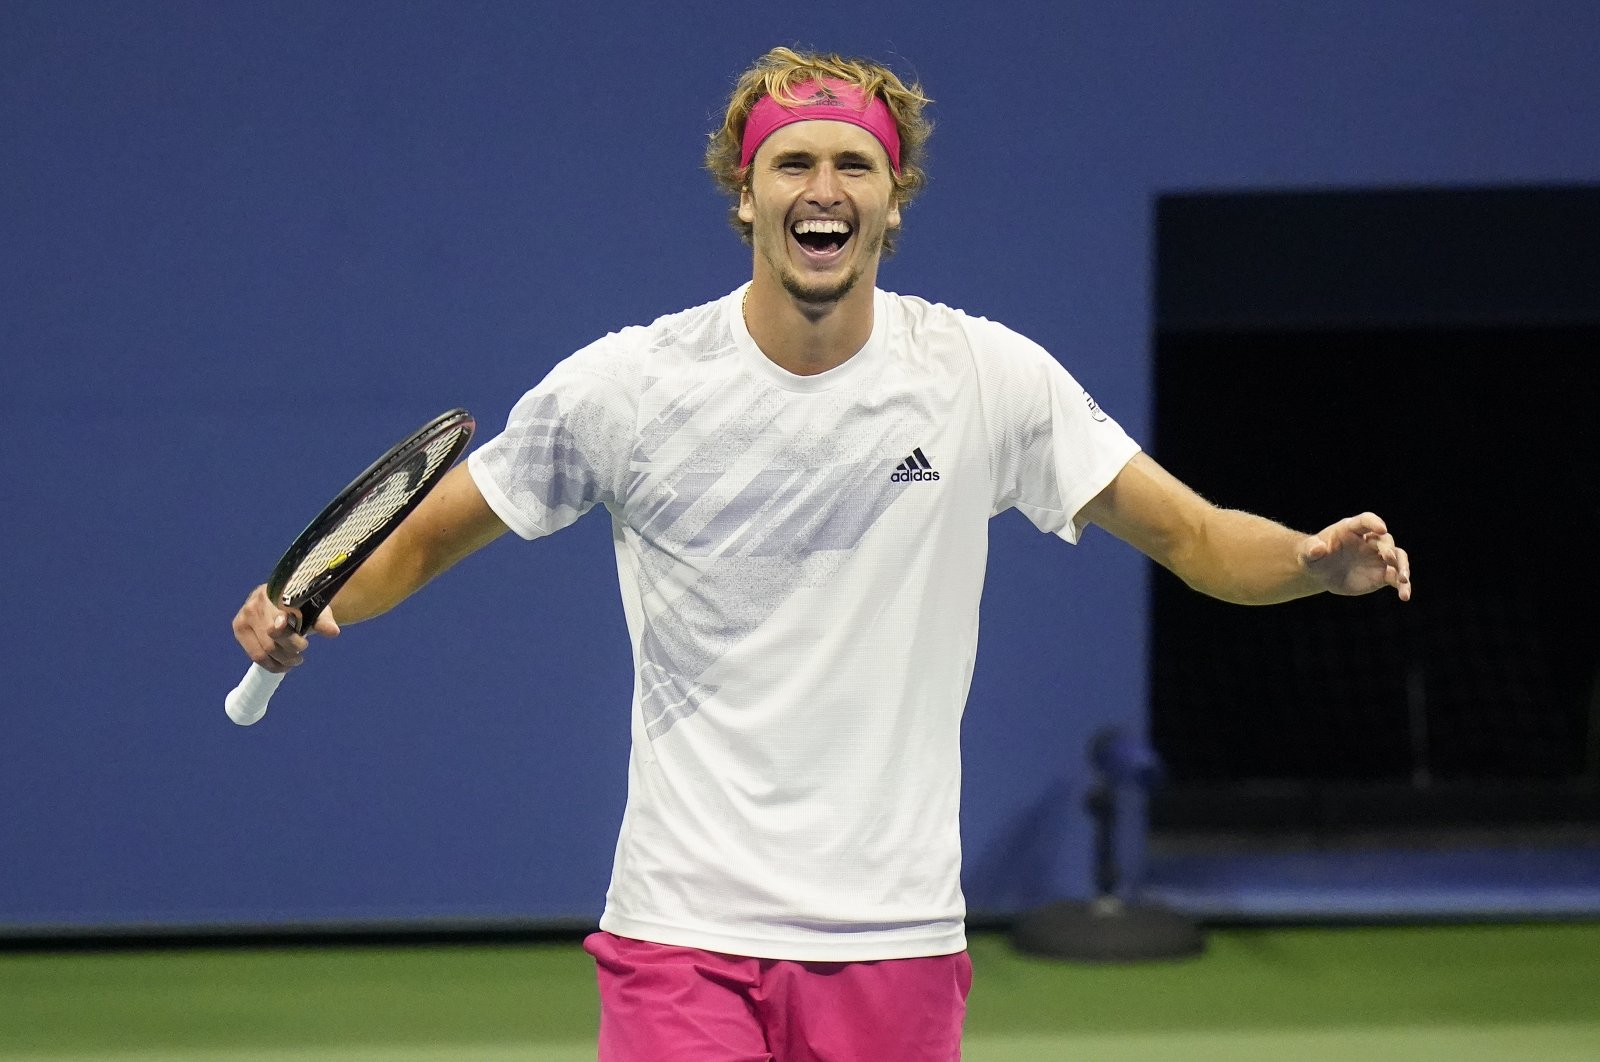 Alexander Zverev, of Germany, reacts after defeating Pablo Carreno Busta, of Spain, during a men's semifinal match of the US Open tennis championships, Friday, Sept. 11, 2020, in New York. (AP Photo)